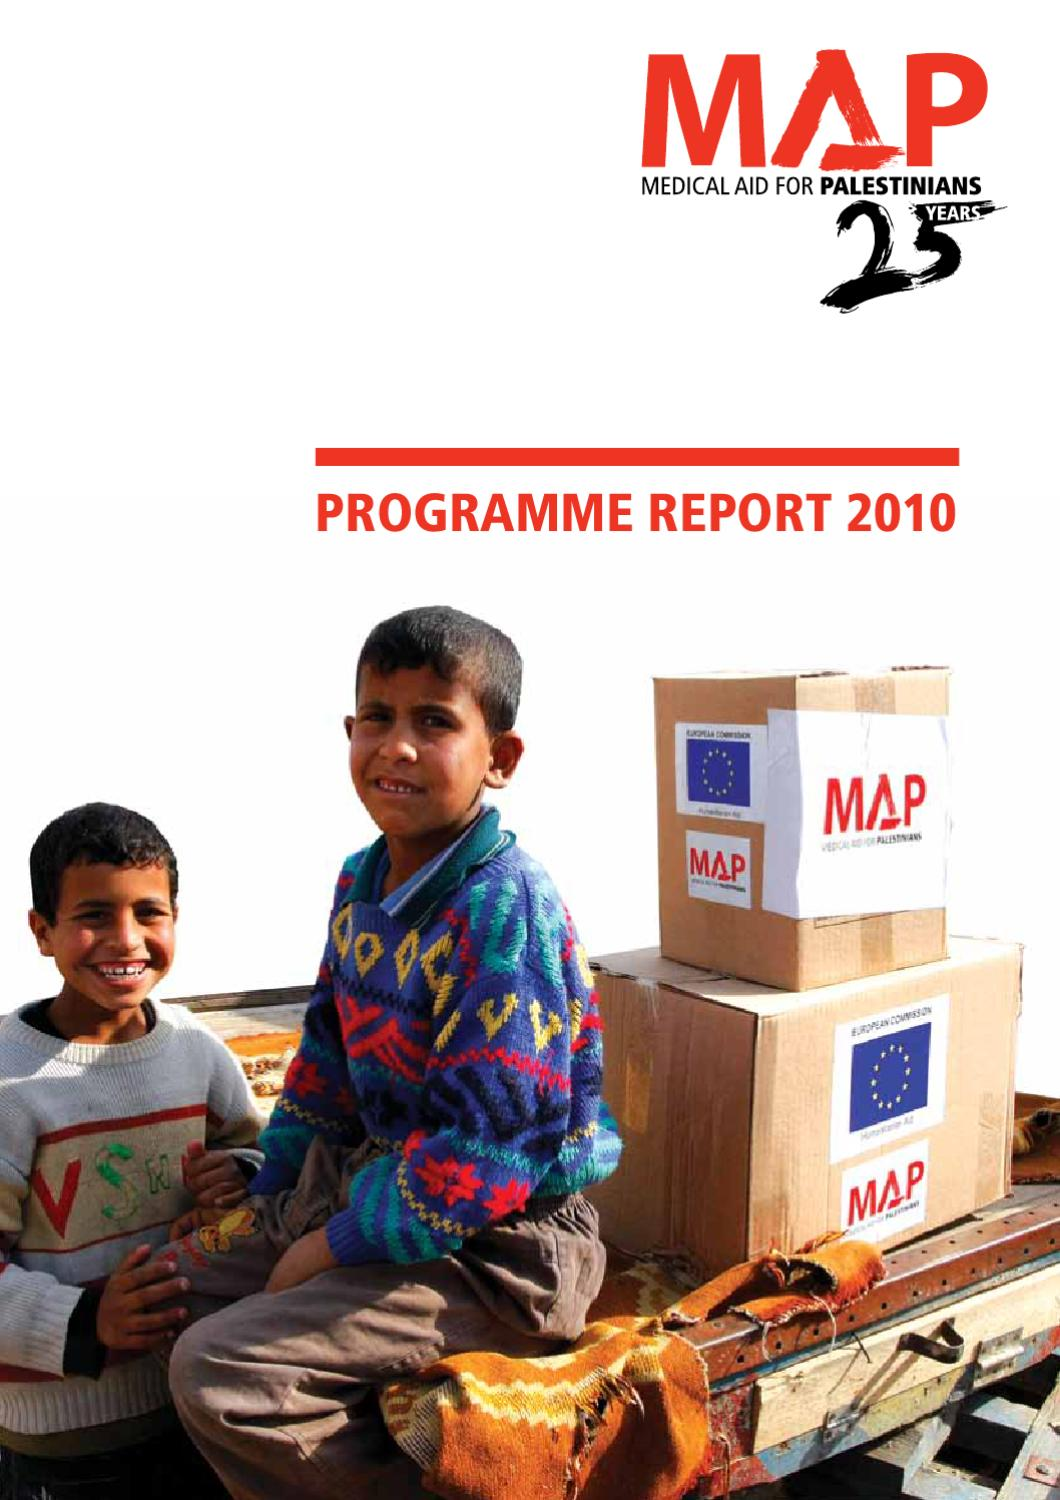 MAP 2010 Programme Report by Medical Aid for Palestinians